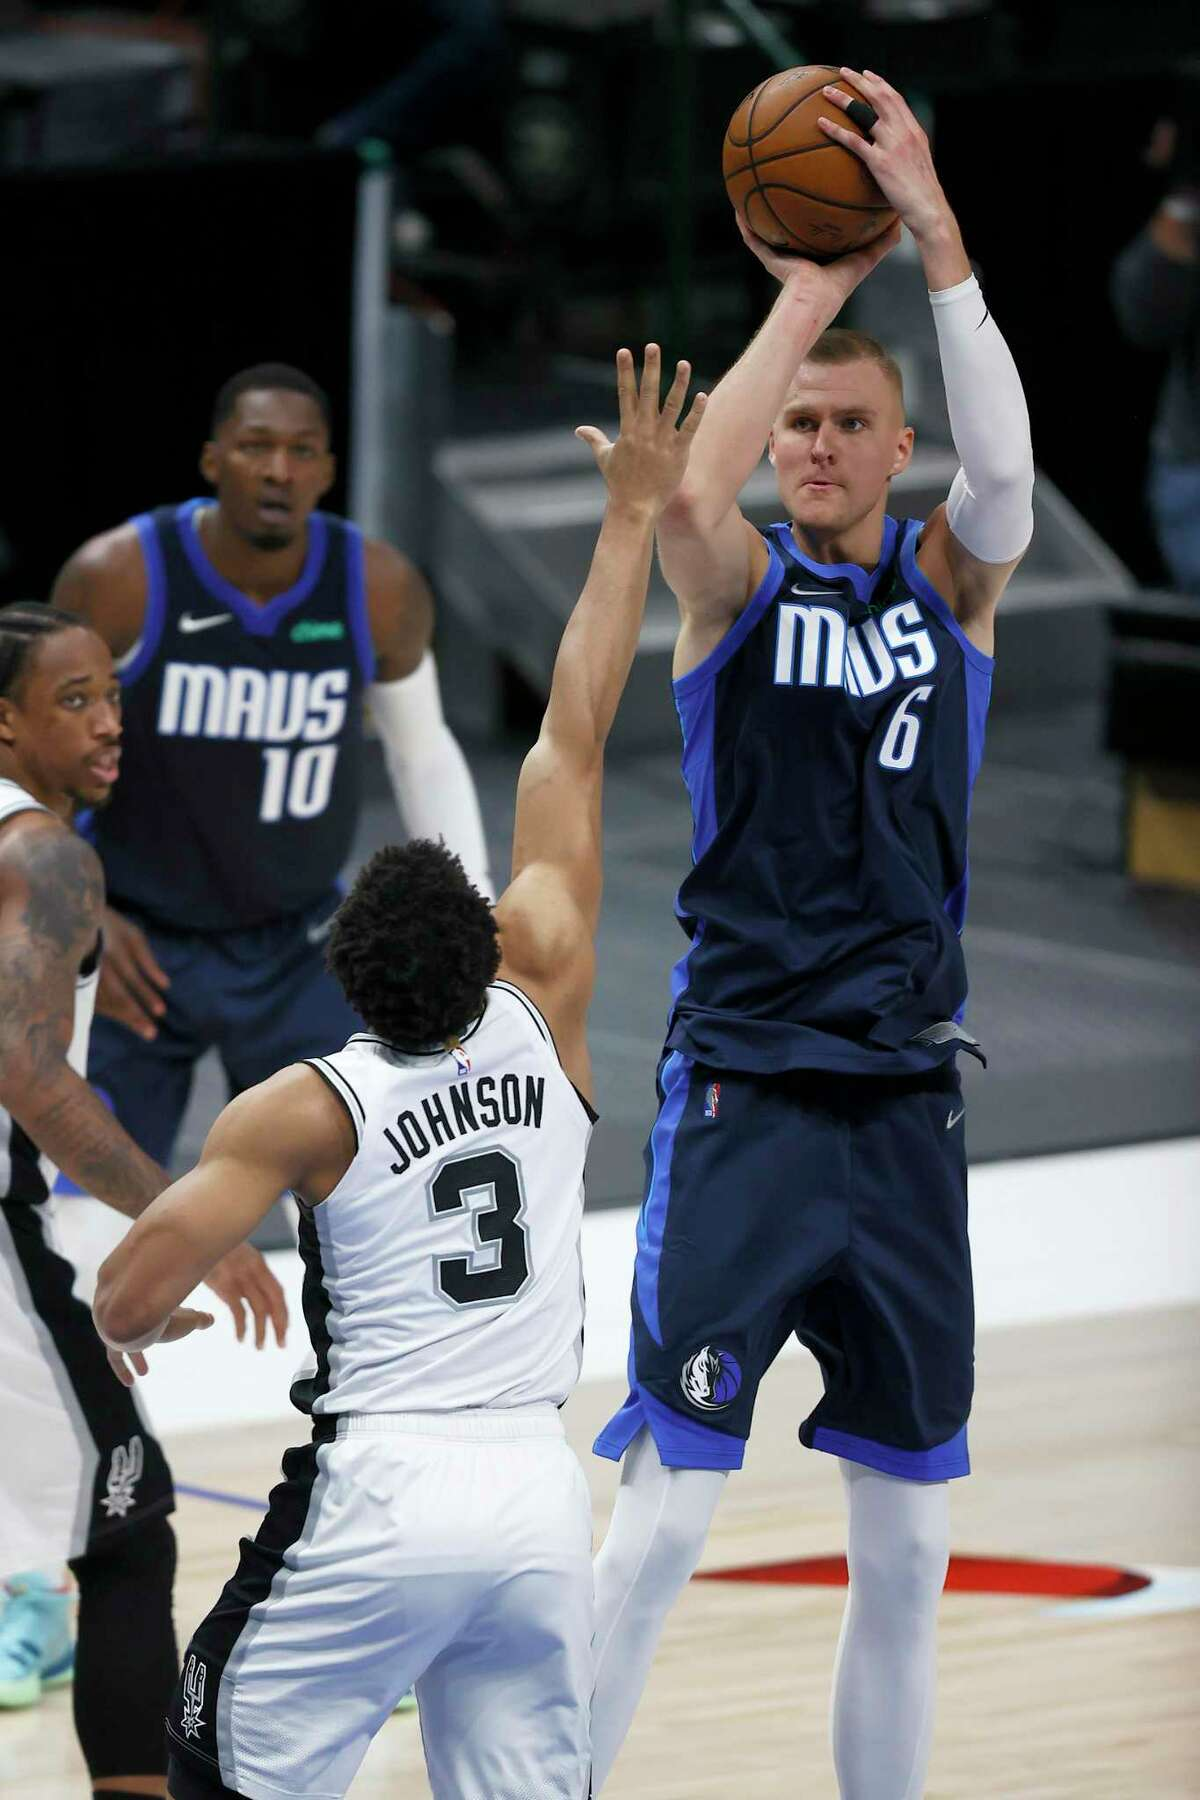 DALLAS, TEXAS - MARCH 10: Kristaps Porzingis #6 of the Dallas Mavericks shoots the ball against Keldon Johnson #3 of the San Antonio Spurs in the fourth quarter at American Airlines Center on March 10, 2021 in Dallas, Texas. NOTE TO USER: User expressly acknowledges and agrees that, by downloading and or using this photograph, User is consenting to the terms and conditions of the Getty Images License Agreement. (Photo by Tom Pennington/Getty Images)